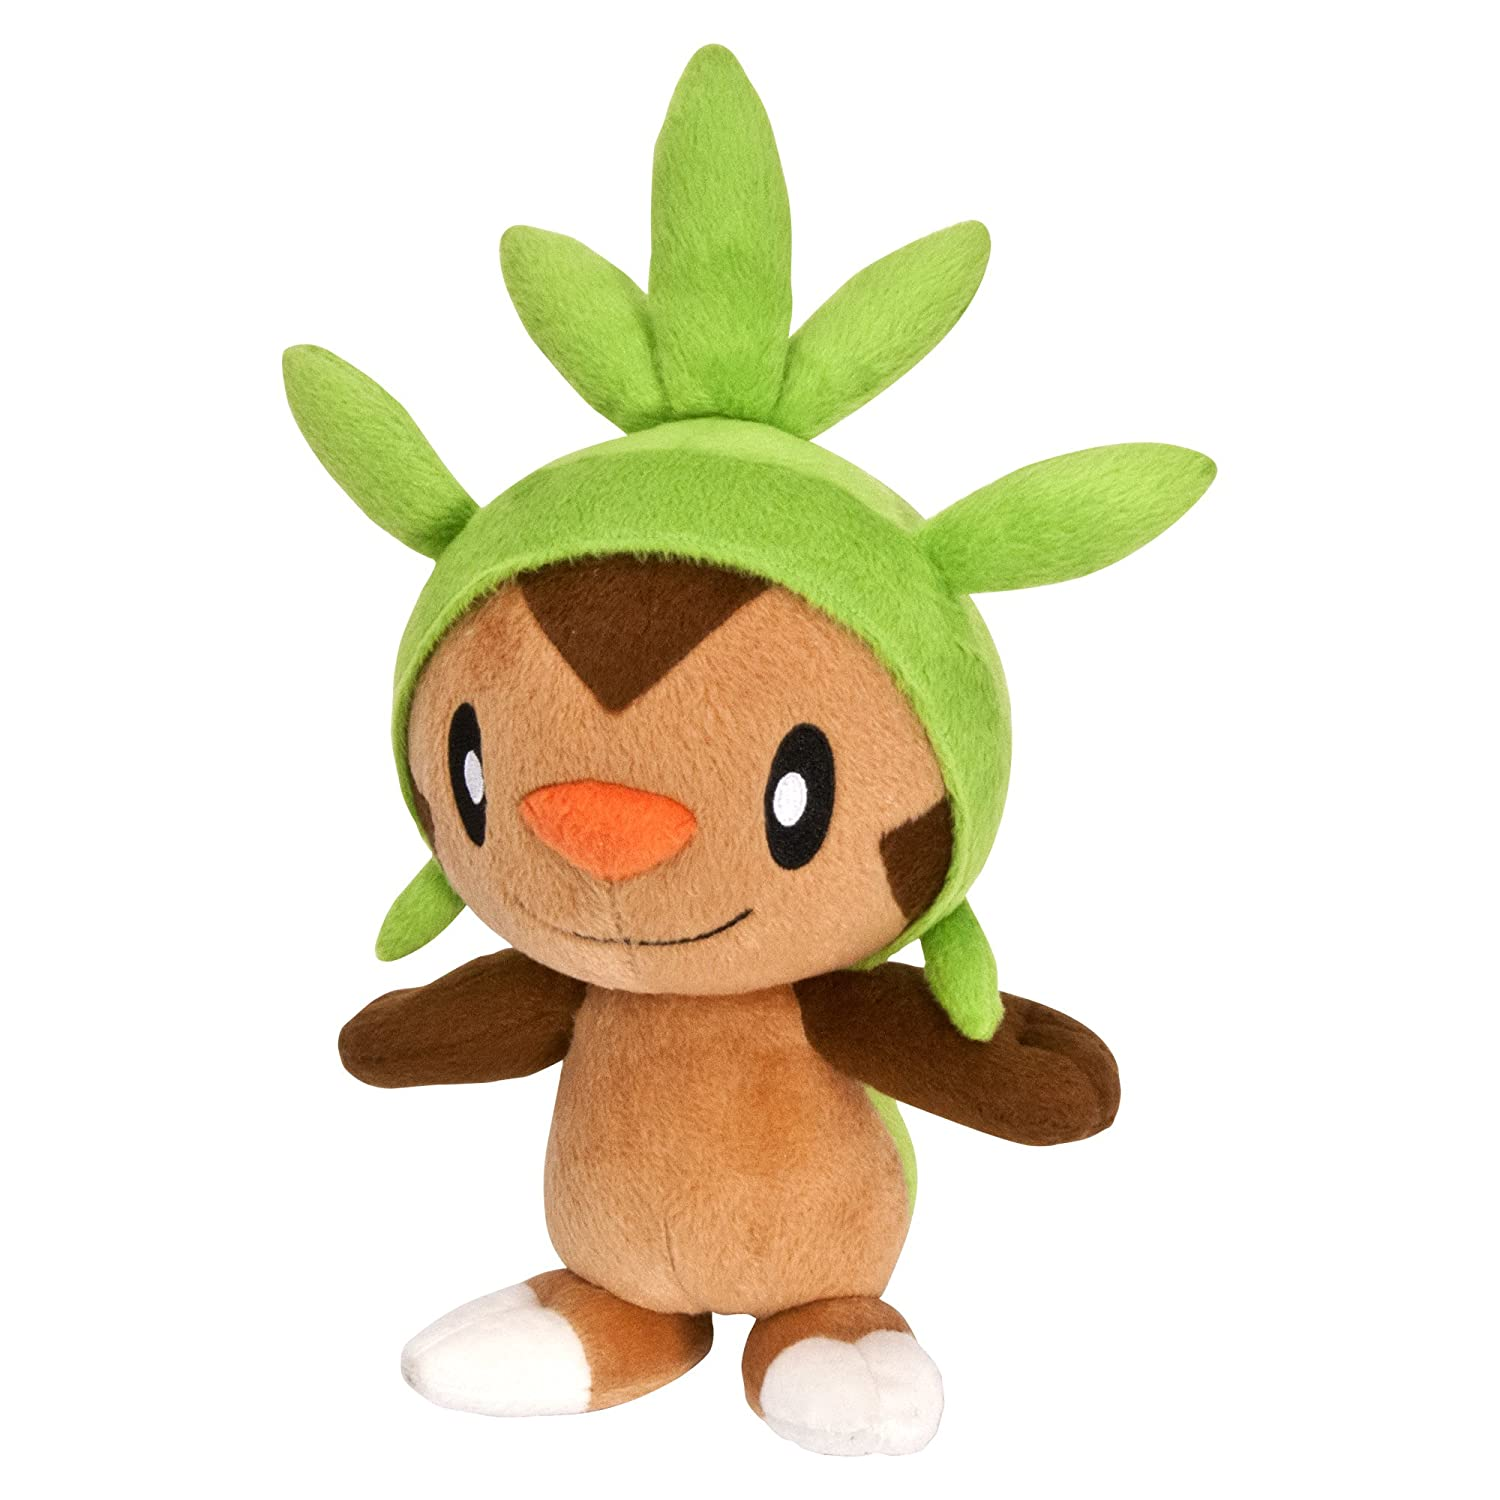 Pokémon Small Plush Chespin